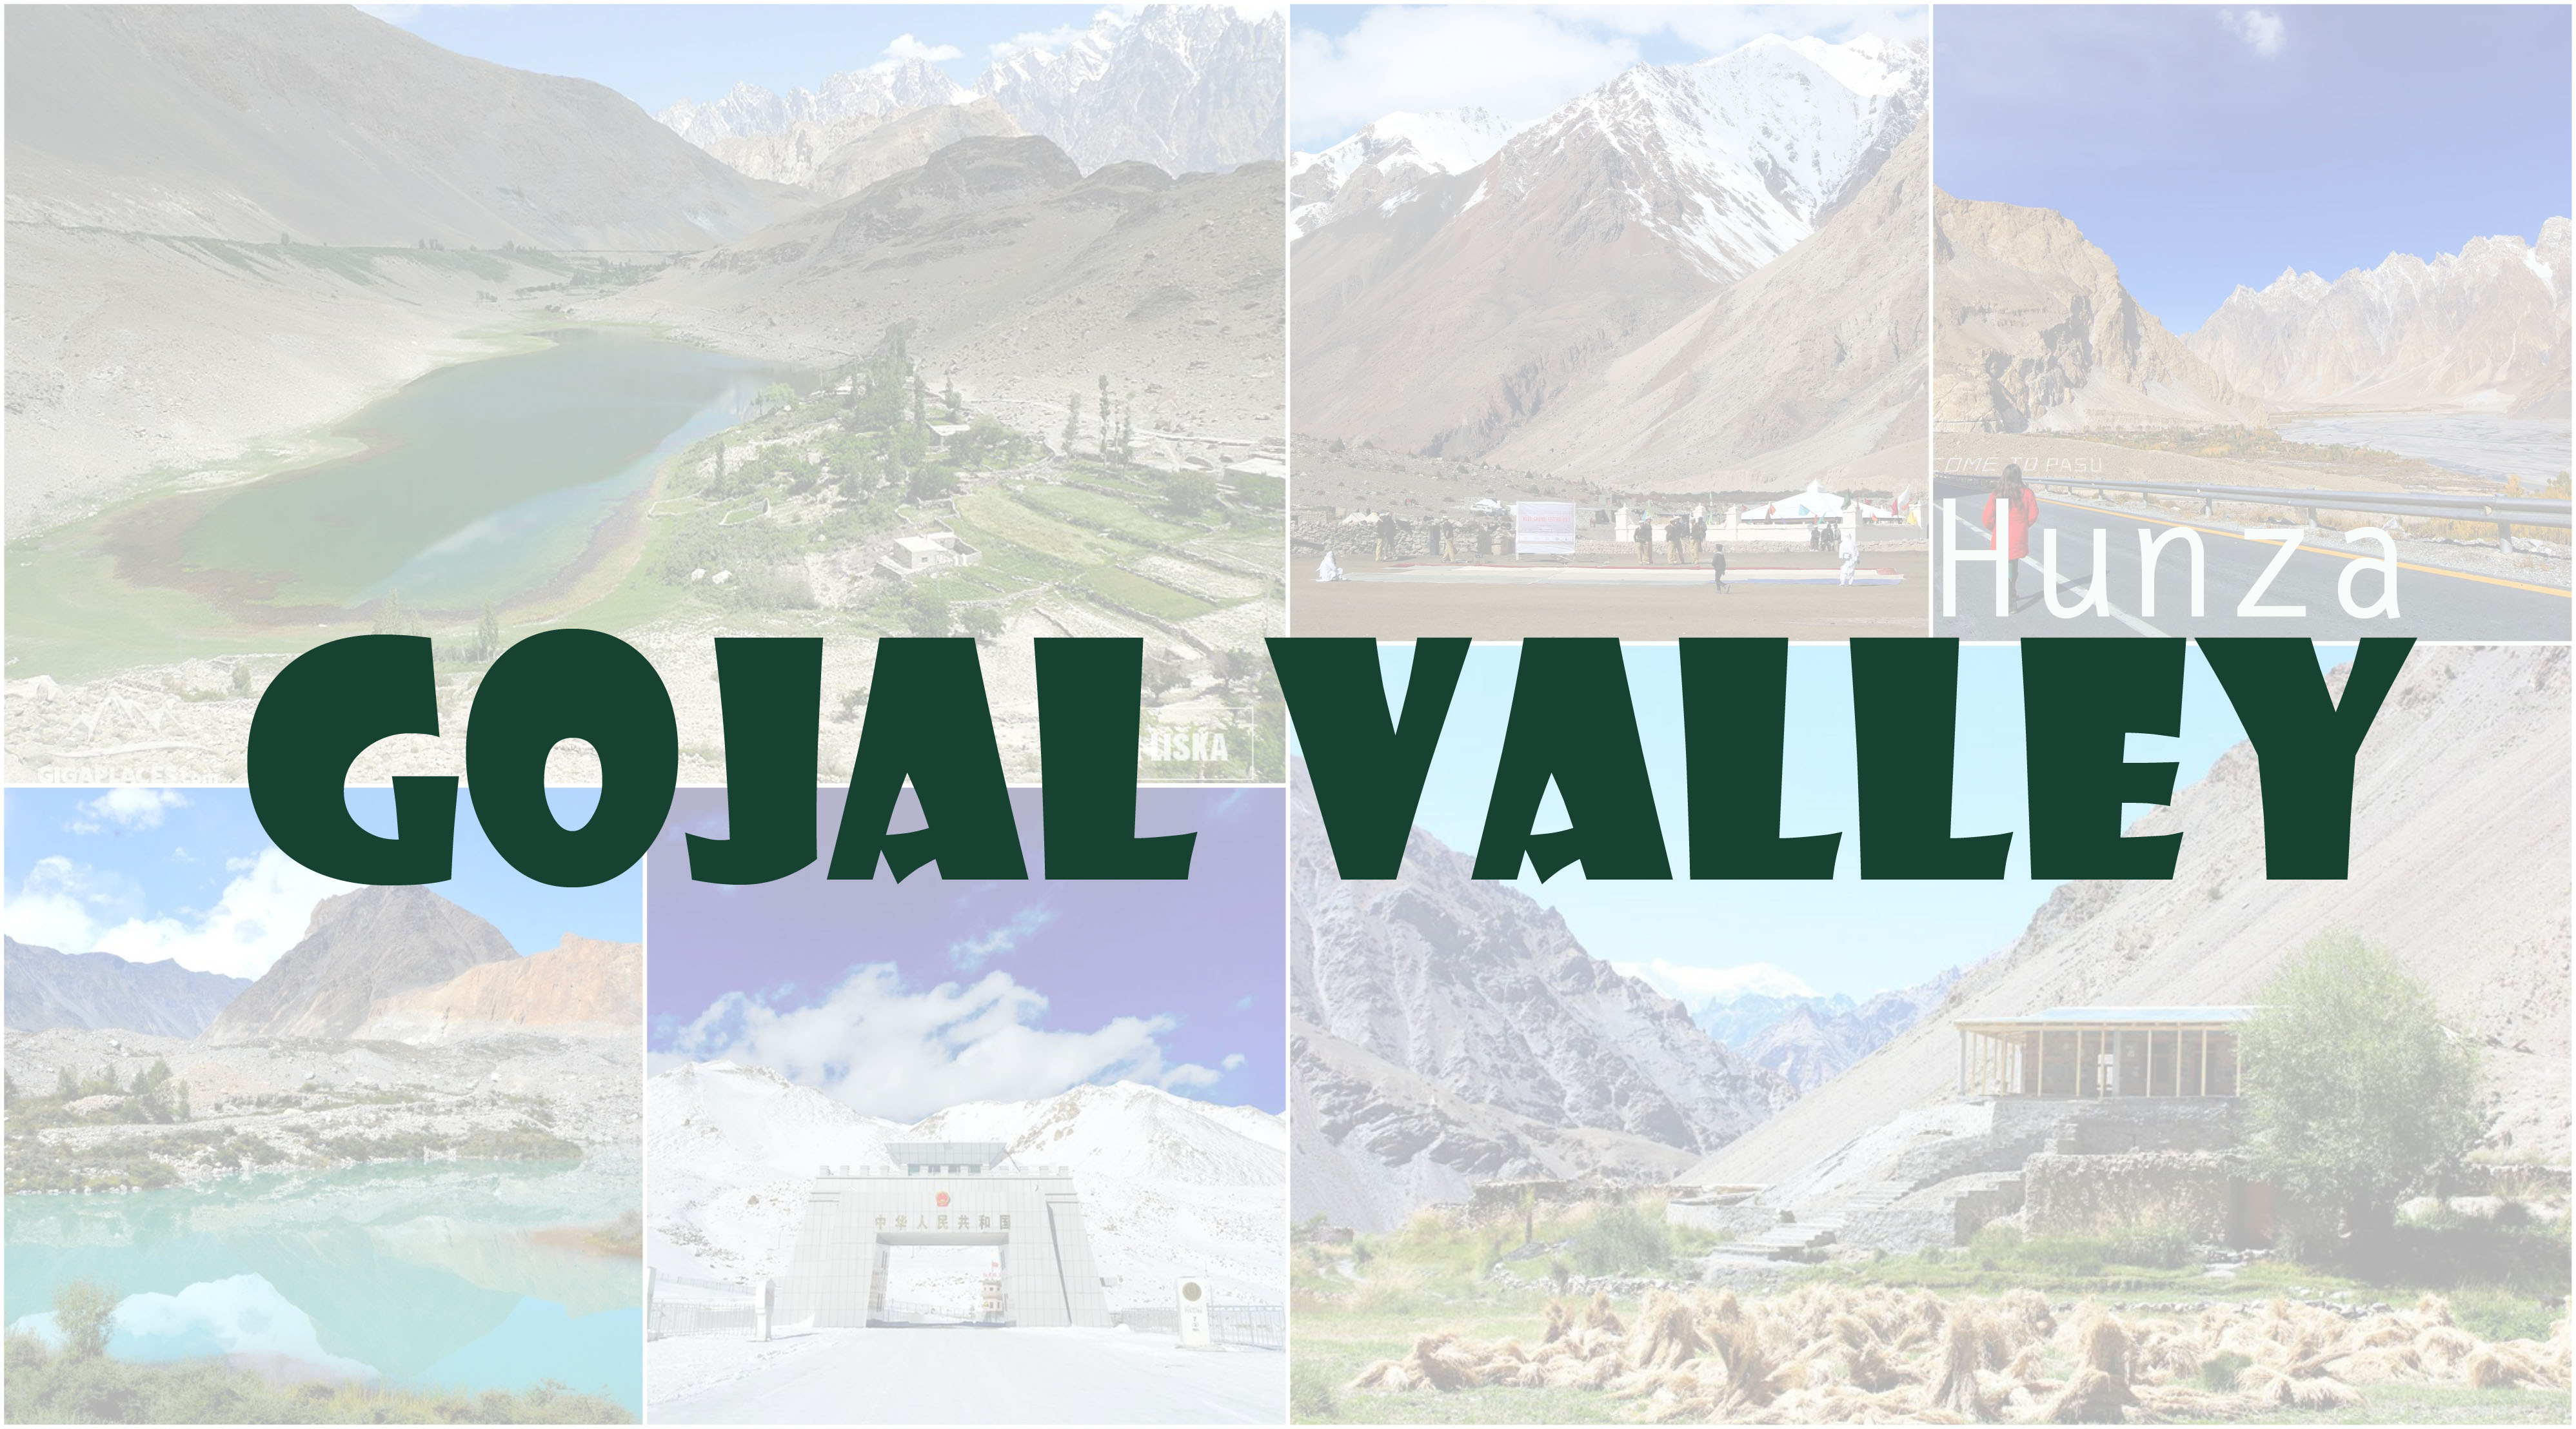 Where to stay in Gojal Valley, Upper Hunza?